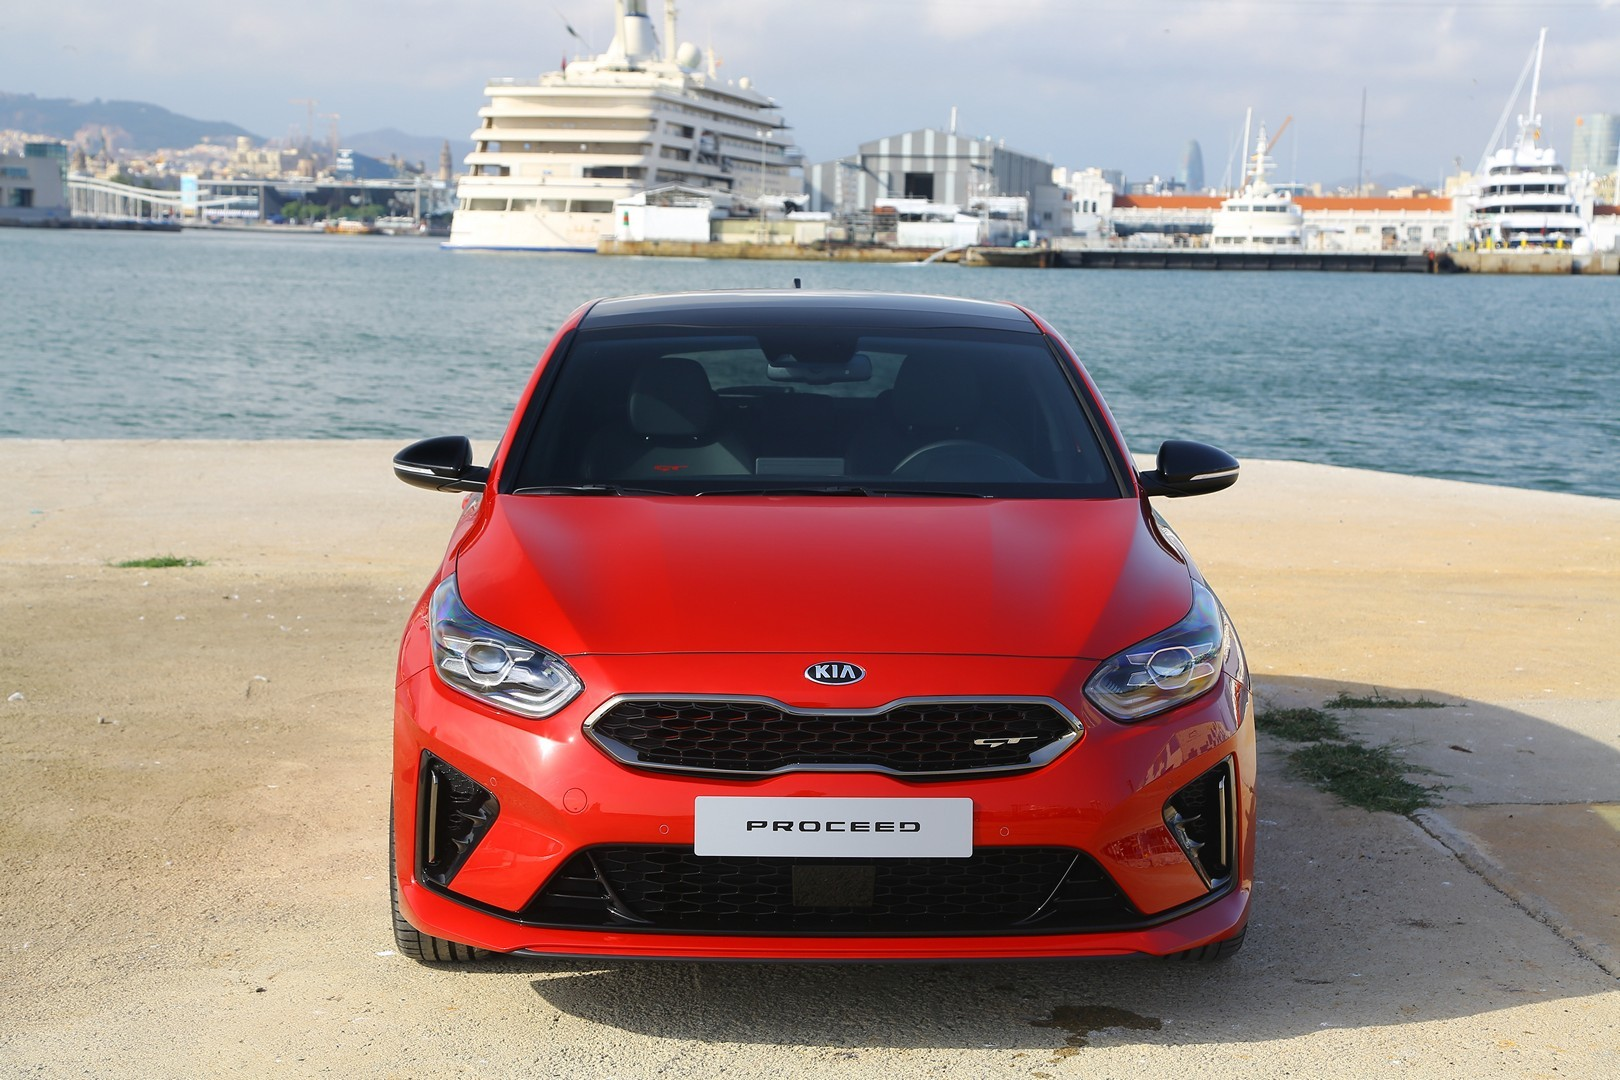 kia-proceed-gt-and-ceed-gt-star-in-fresh-real-life-photos_6